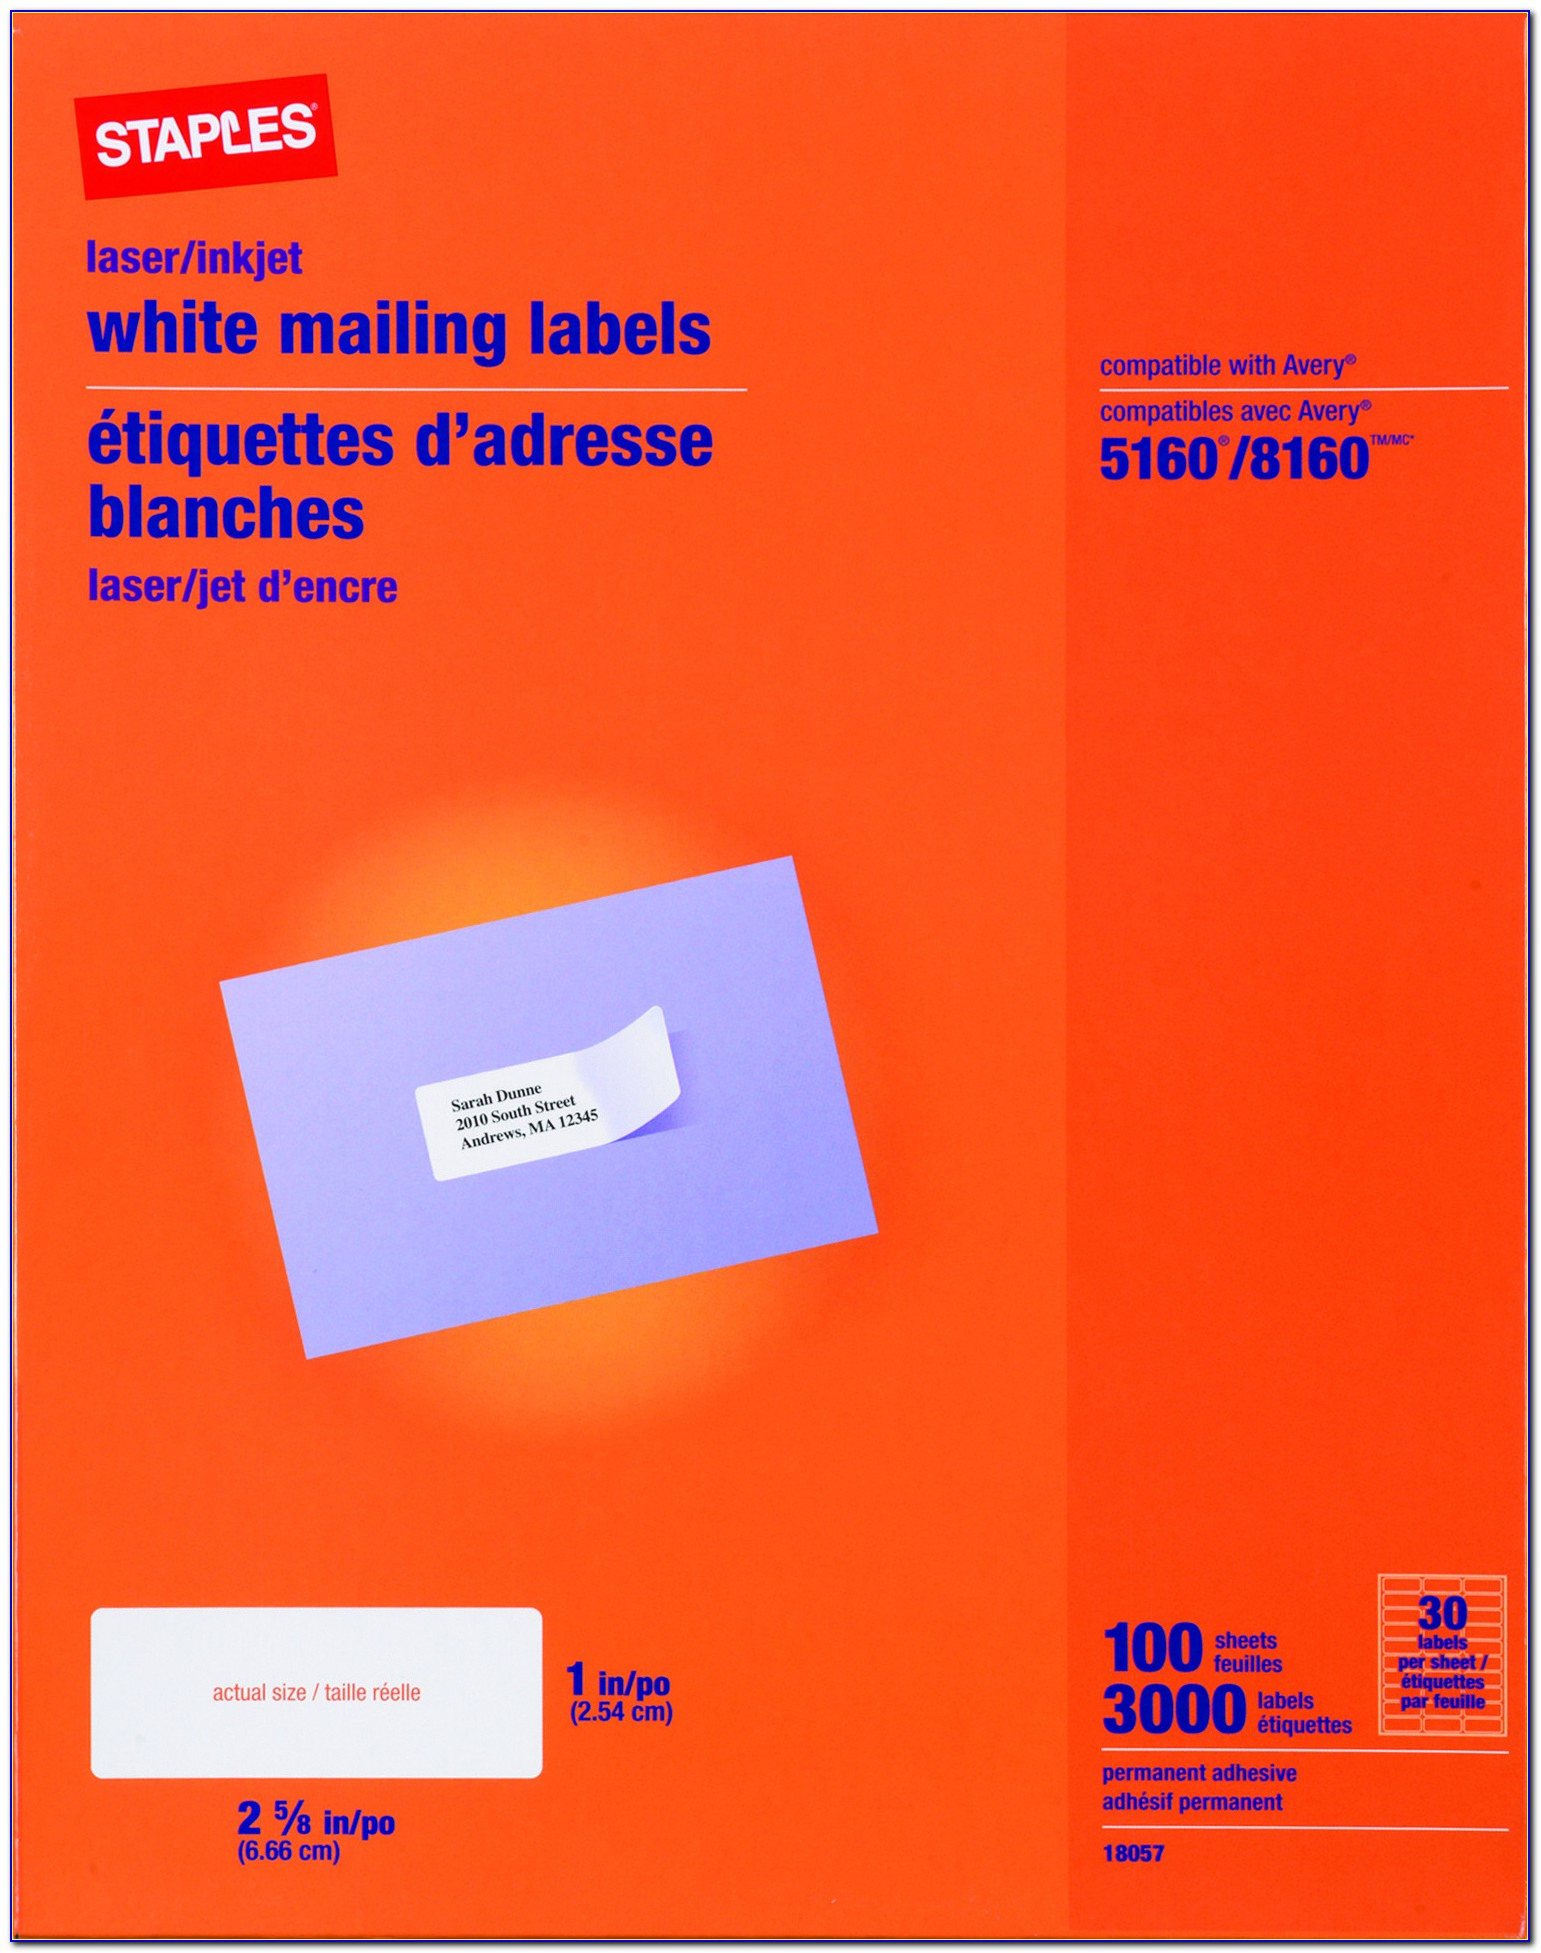 Staples Address Label Template 5160